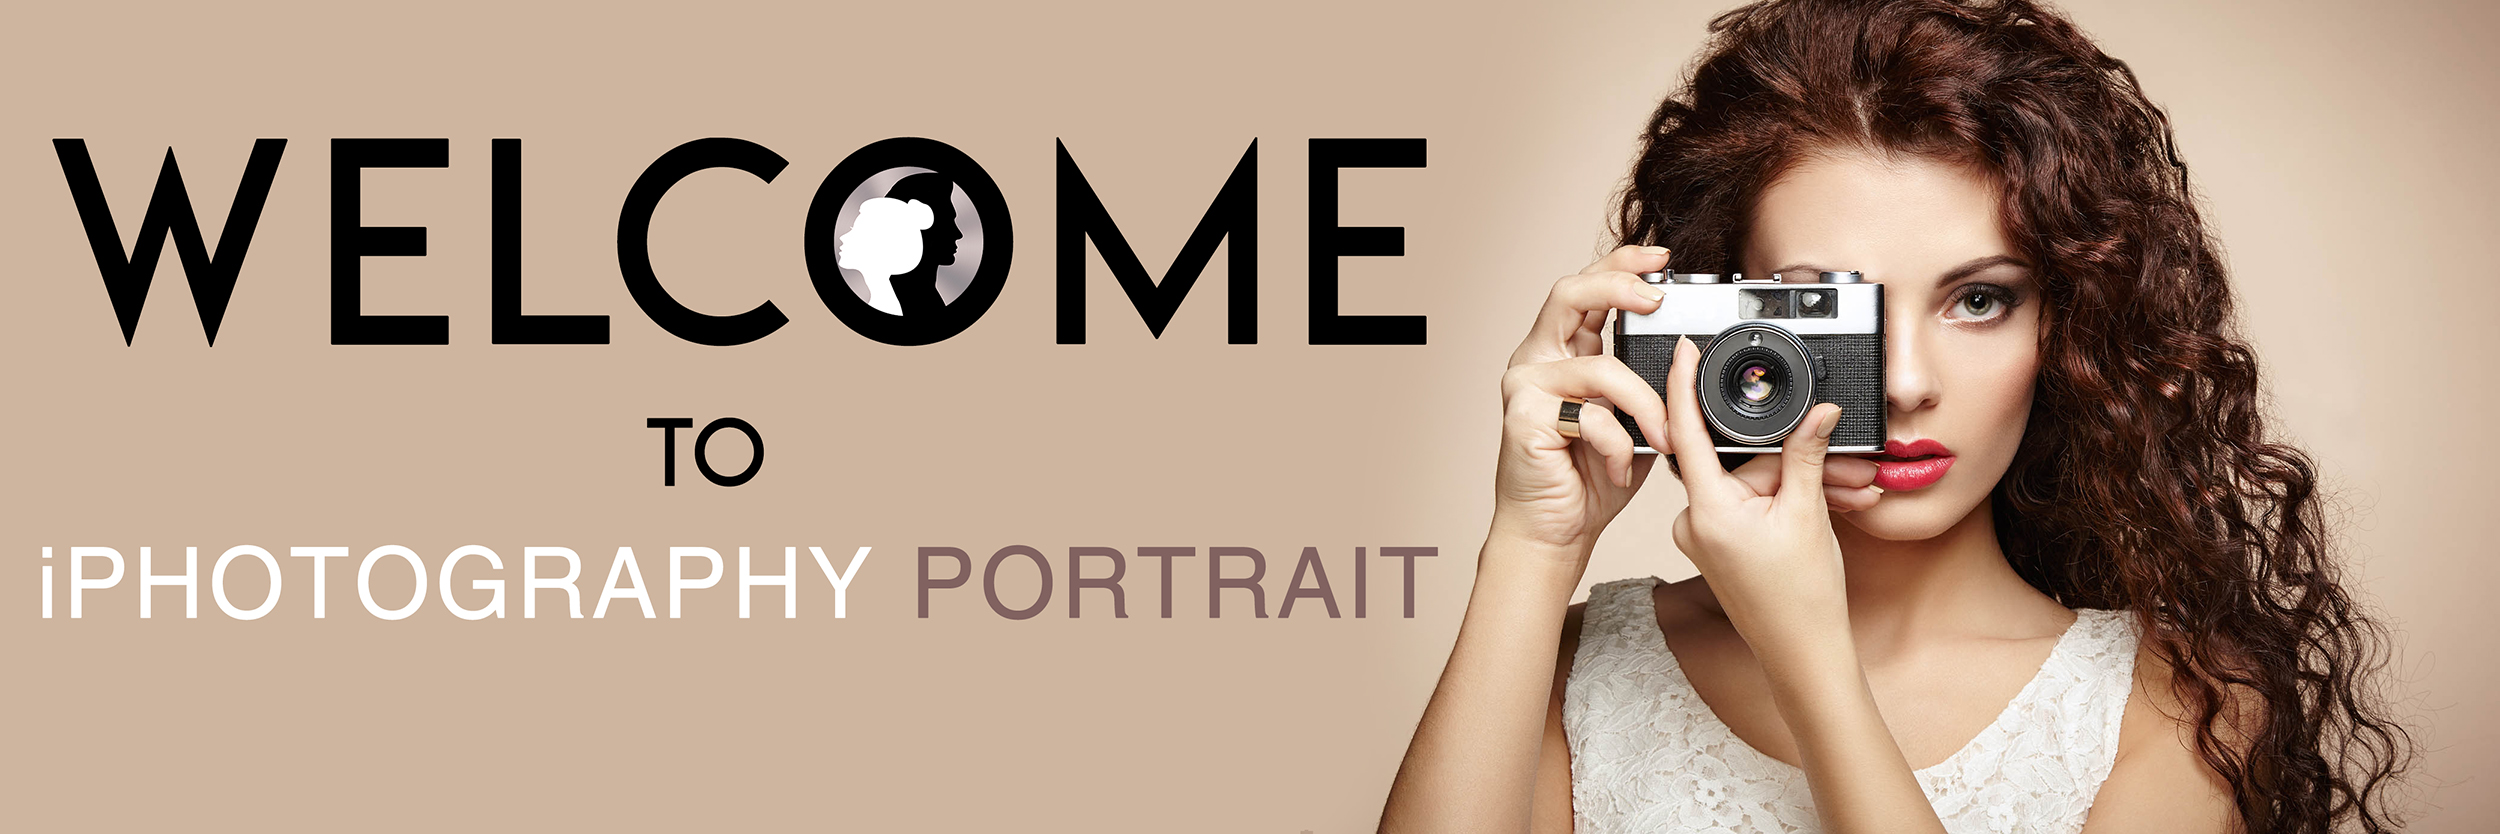 iphotography welcome to the portrait course banner